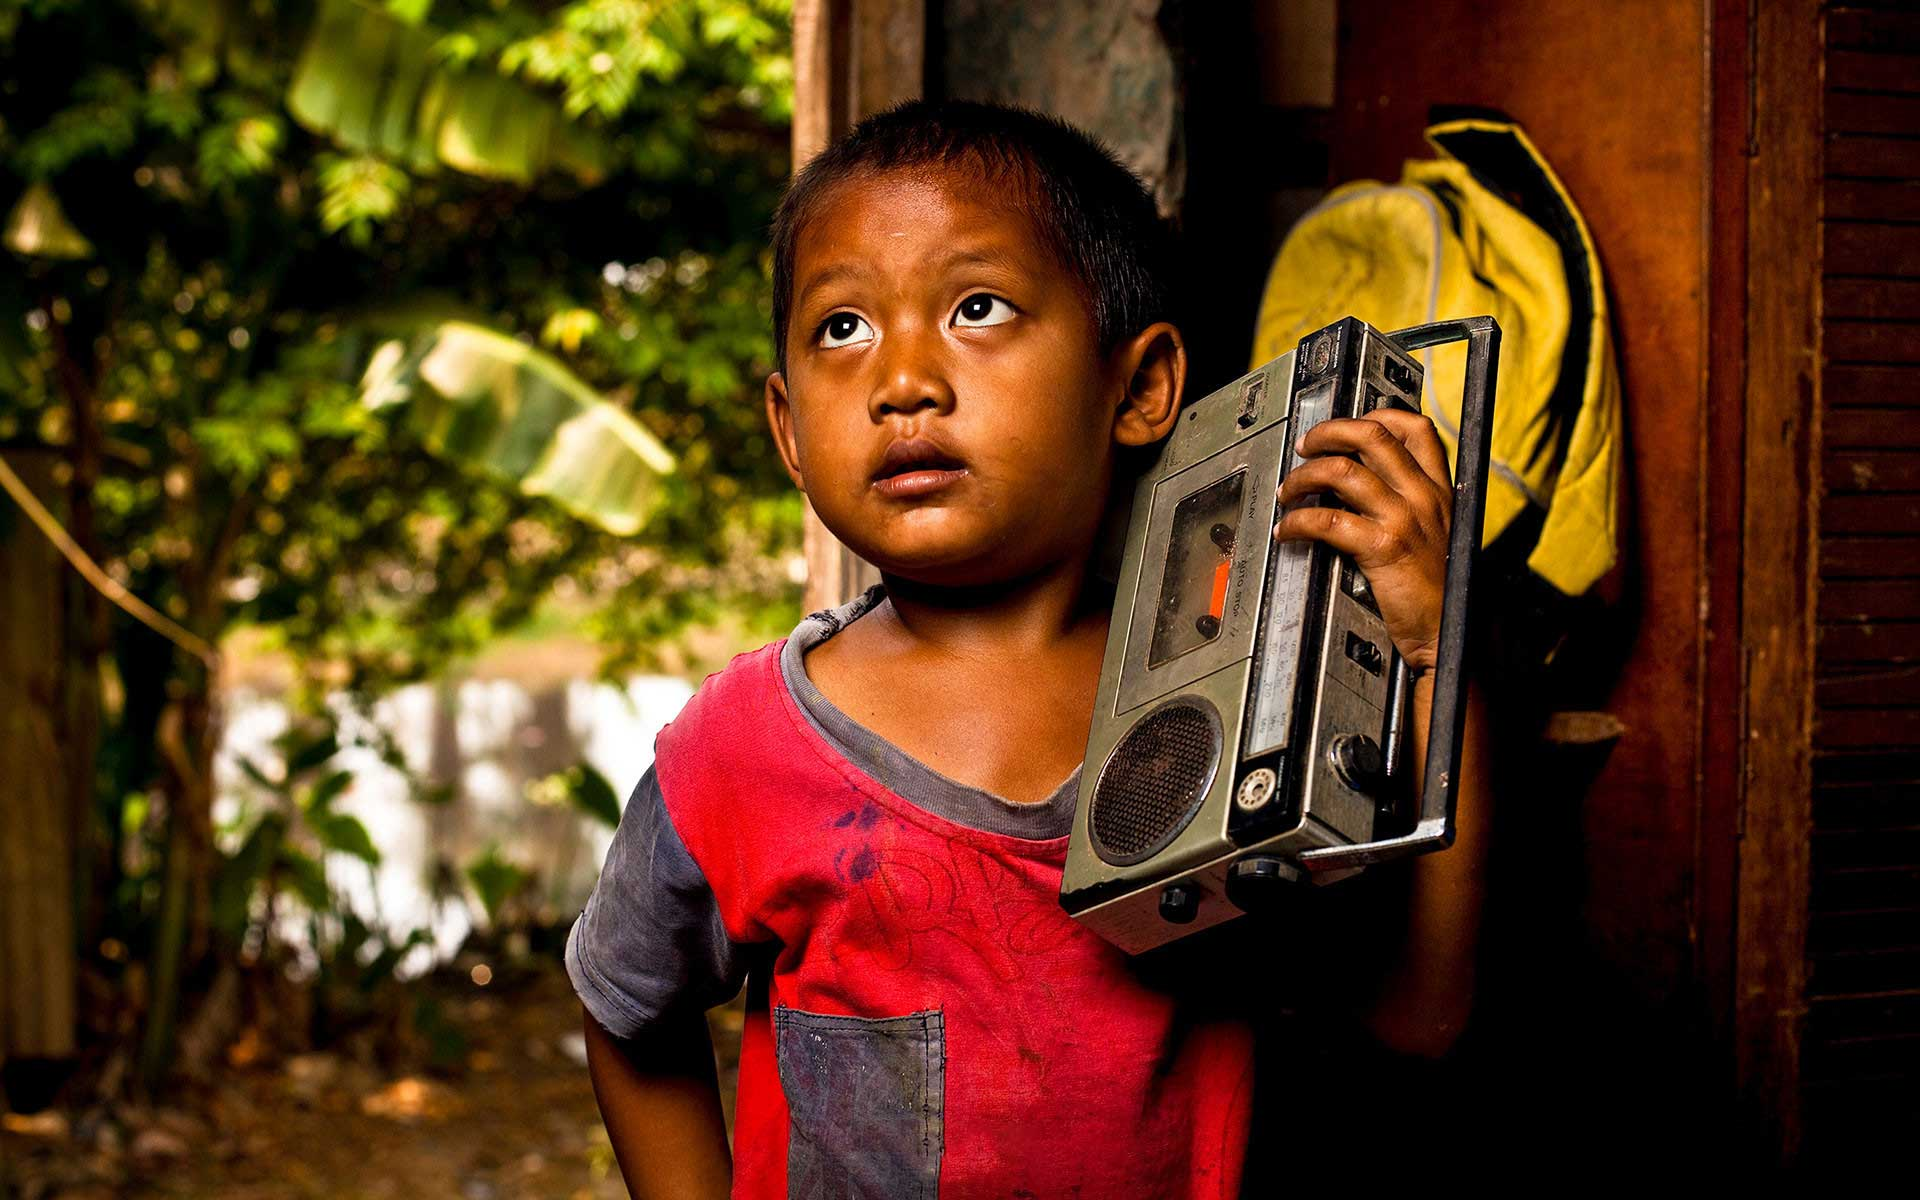 A boy holding a radio against his shoulder